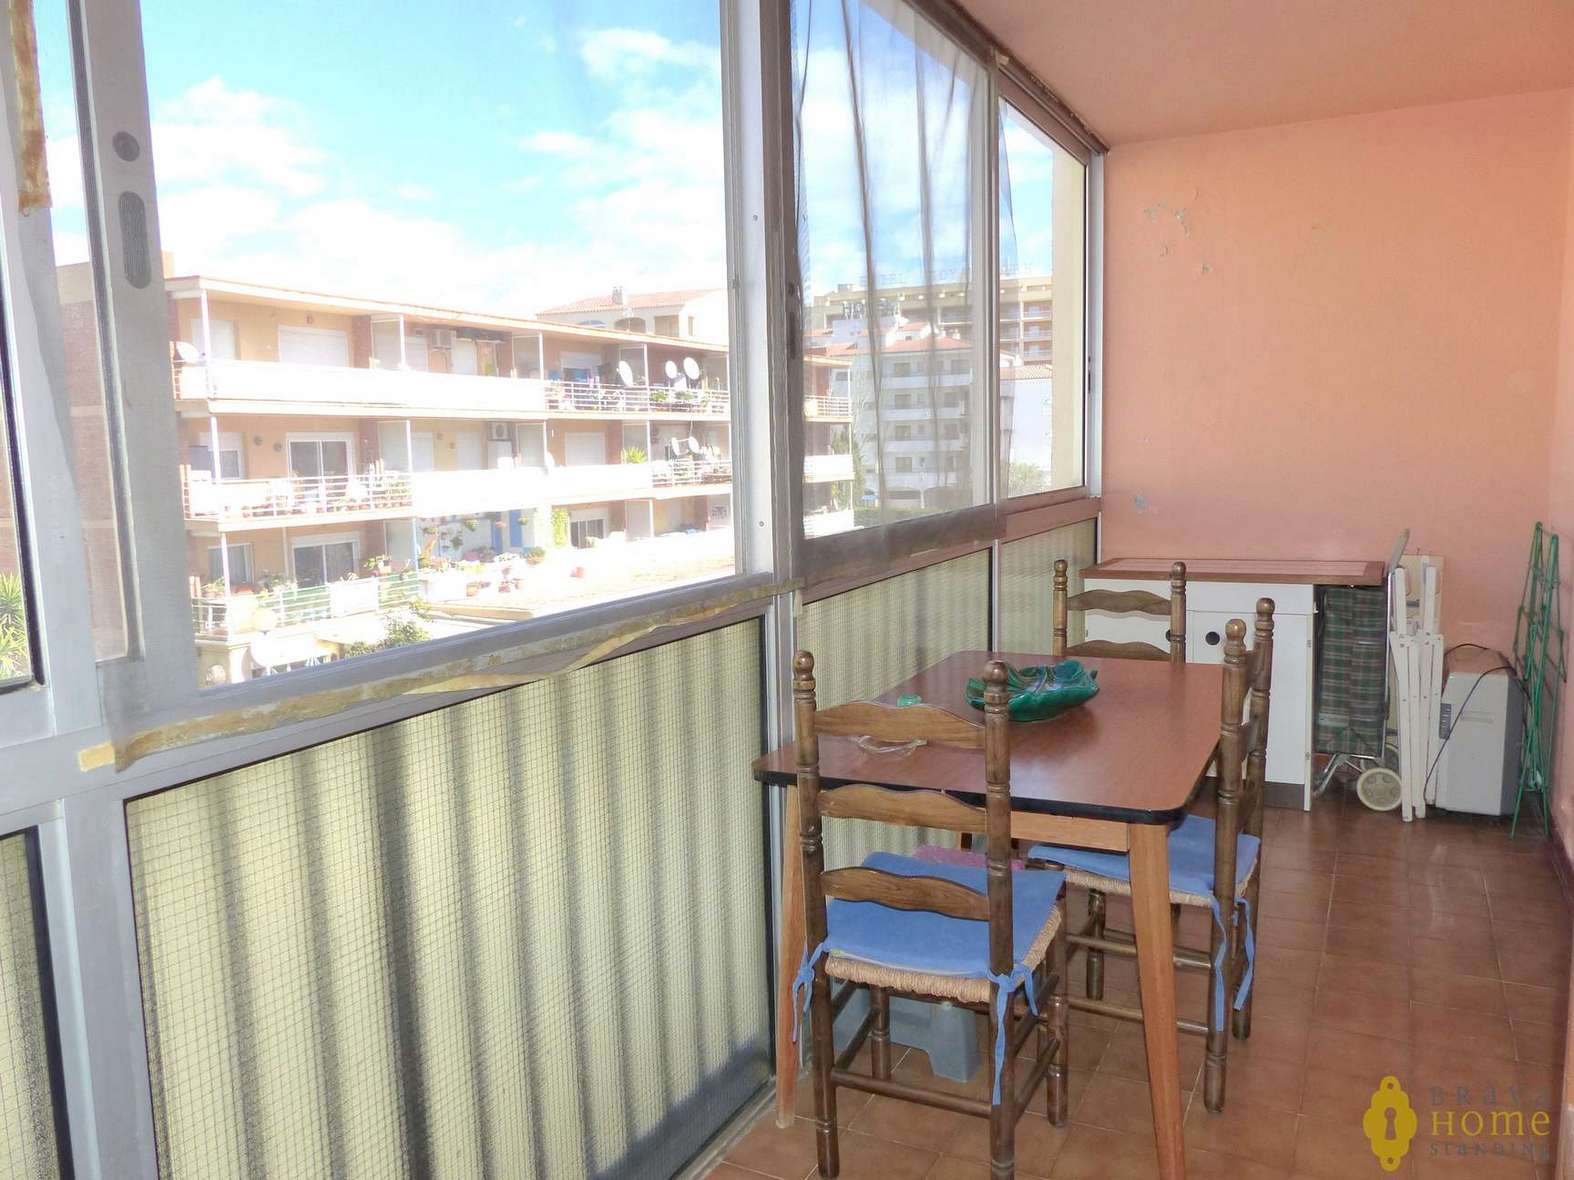 APARTMENT AT 300M FROM THE BEACH FOR SALE IN ROSAS - SANTA MARGARITA